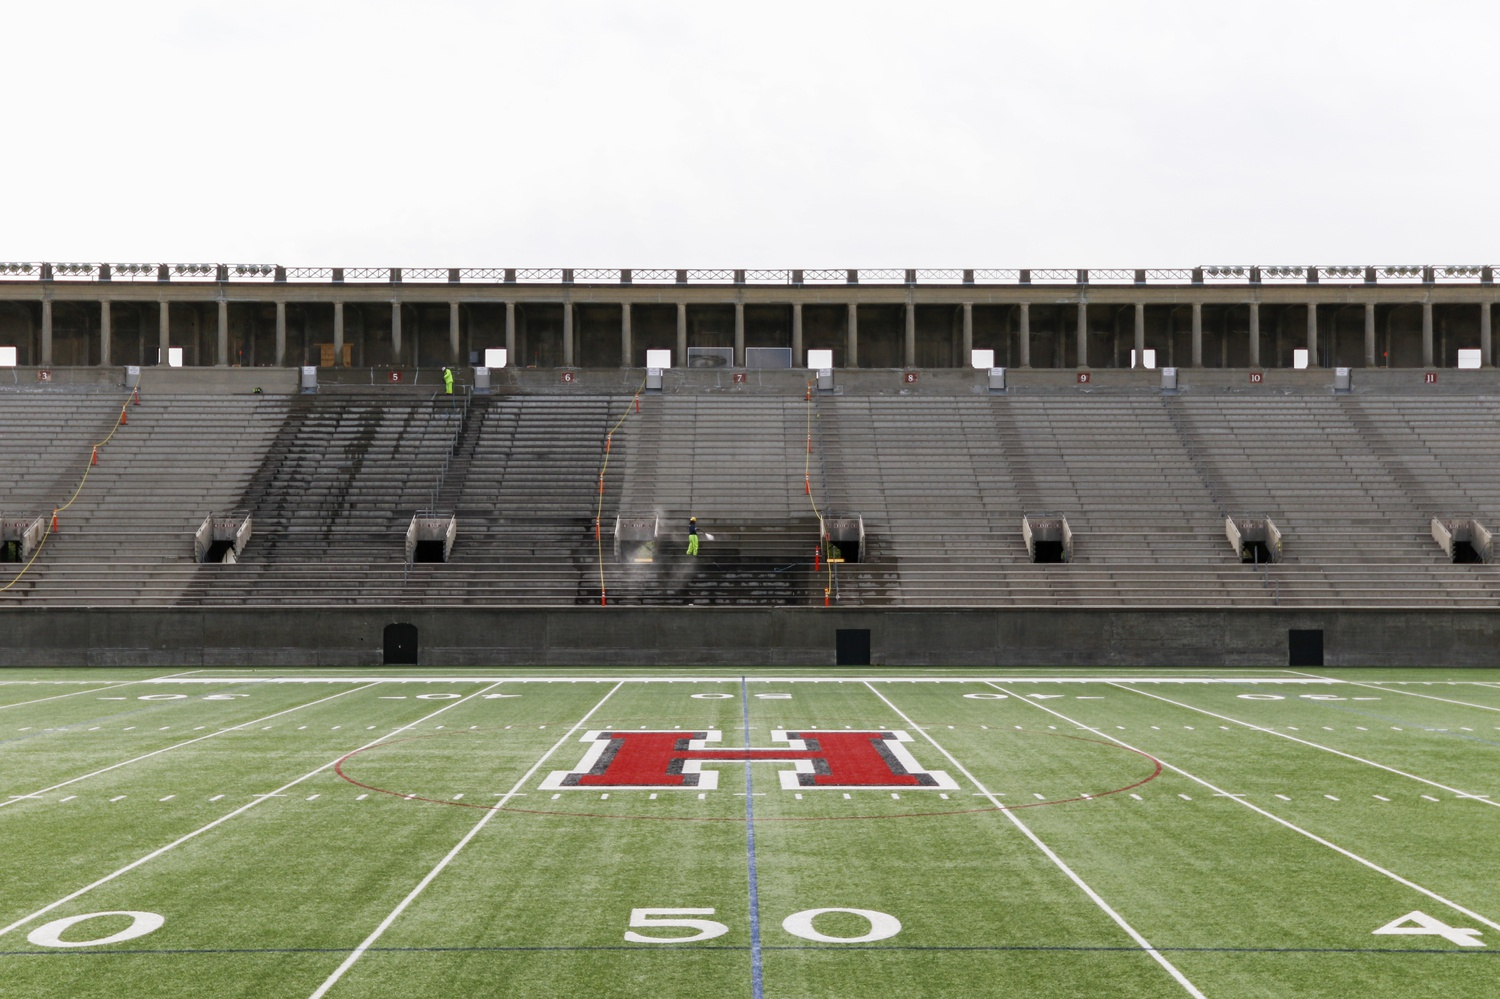 Varsity athletes whose spring seasons were canceled due to the coronavirus will not be able to use their extra year of National Collegiate Athletics Association eligibility at Harvard by taking a semester off.